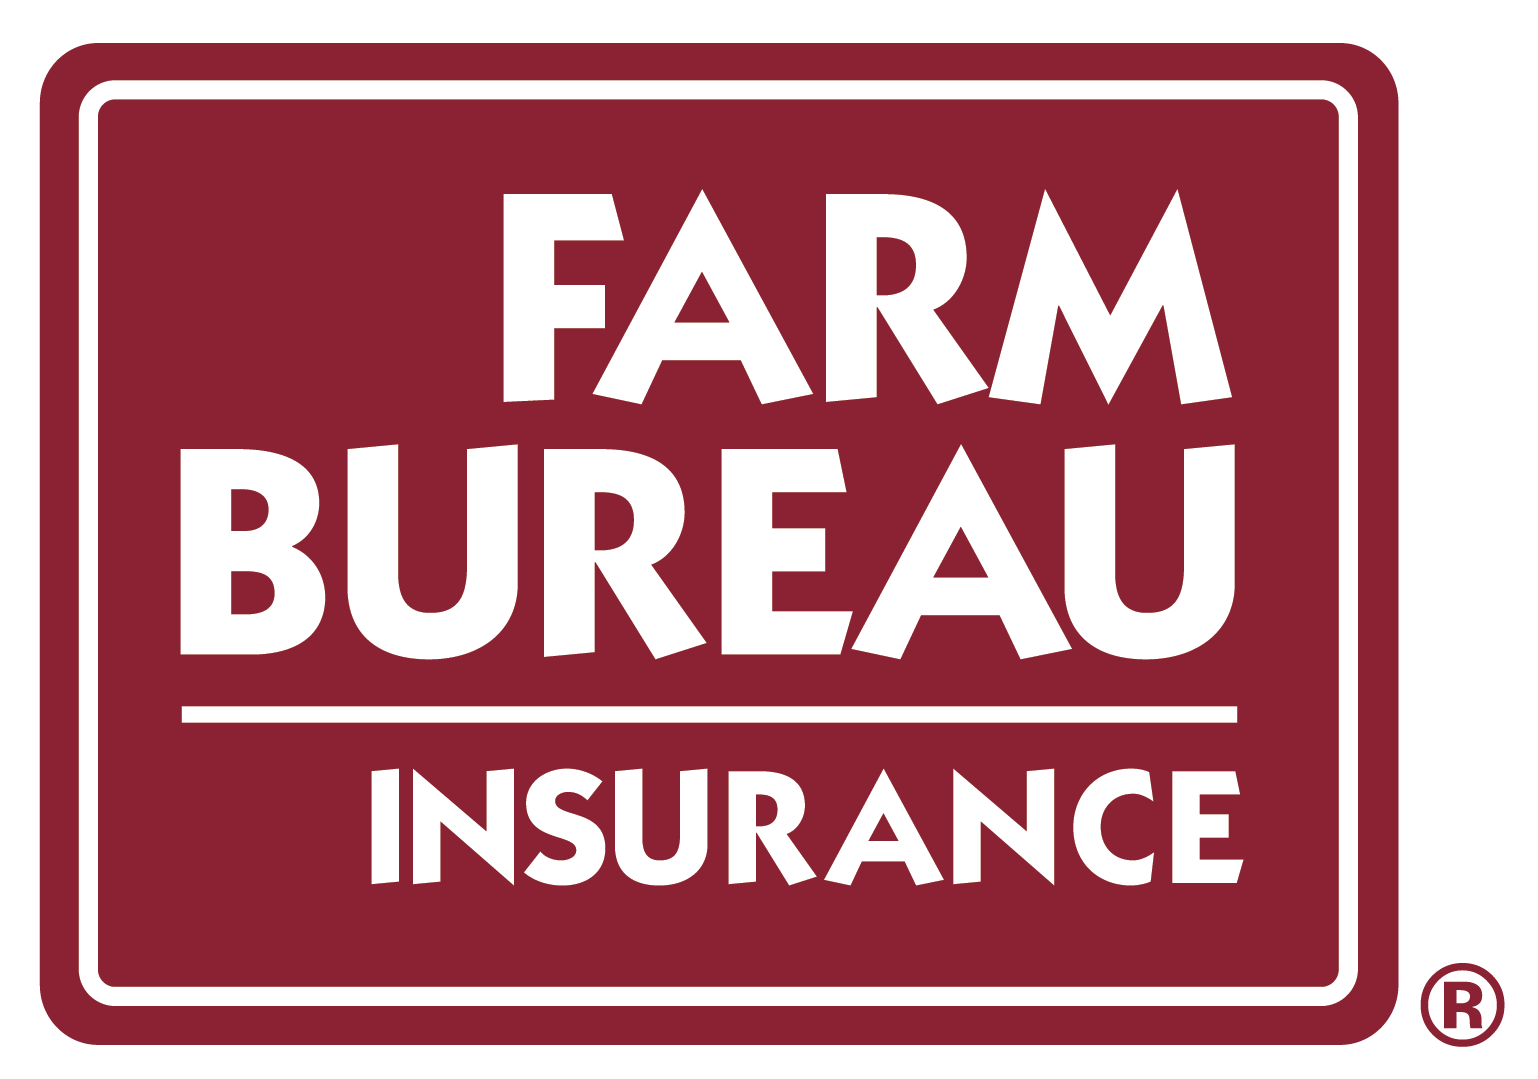 Arkansas Farm Bureau Insurance logo